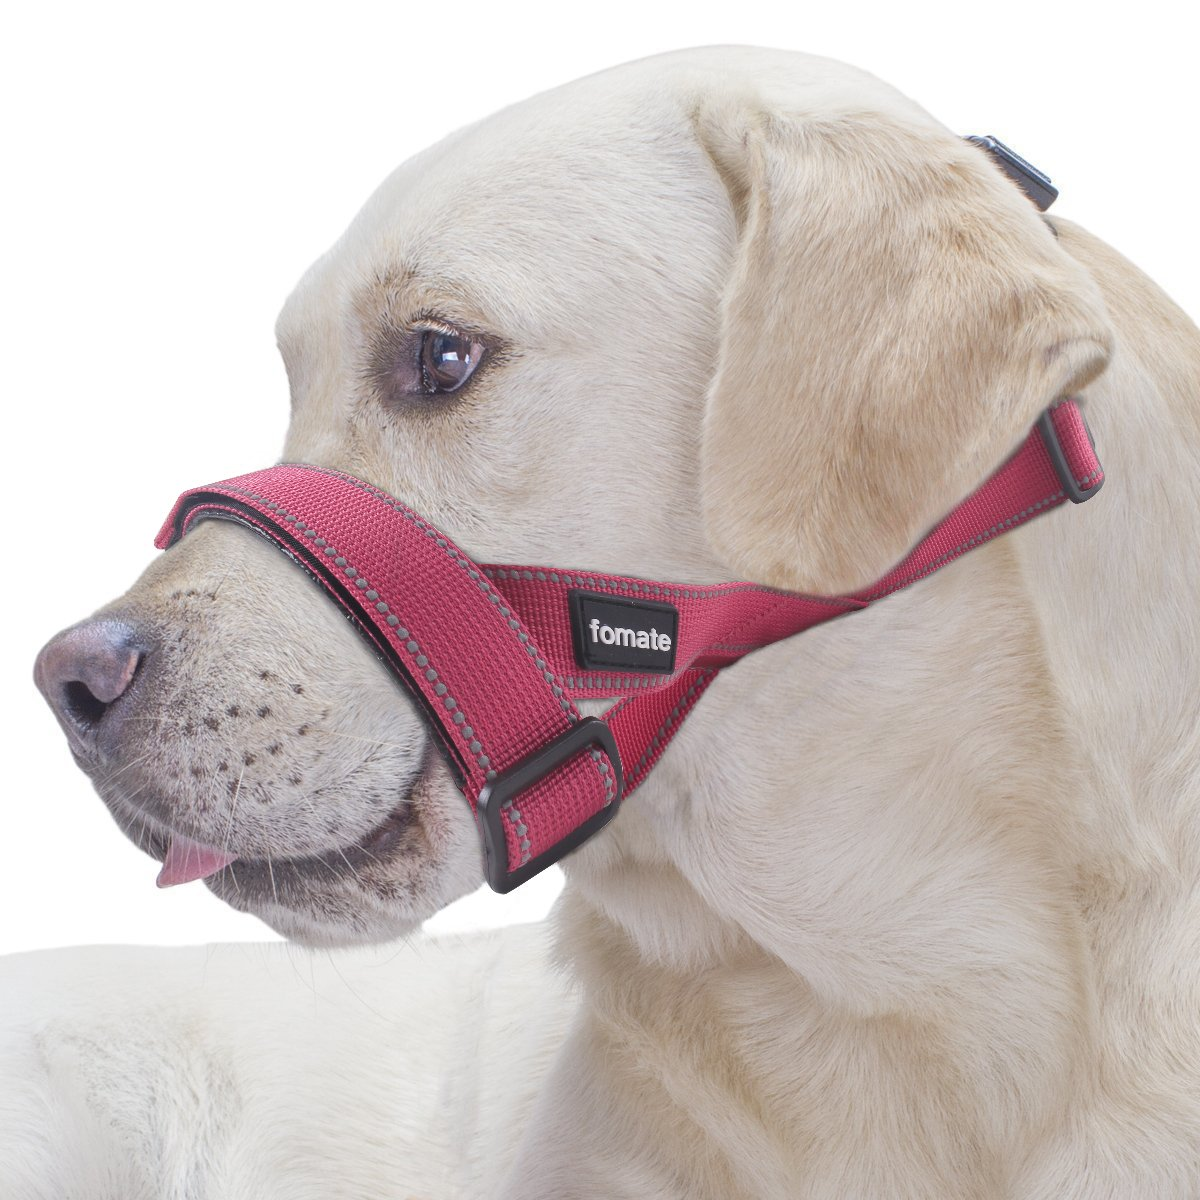 FOMATE Quick-Fit Dog Muzzle Lead Collar with Adjustable Sections, Quick Release Strap, and High Visibility Safety Reflective Stripes (Large, Reflective pink Red)